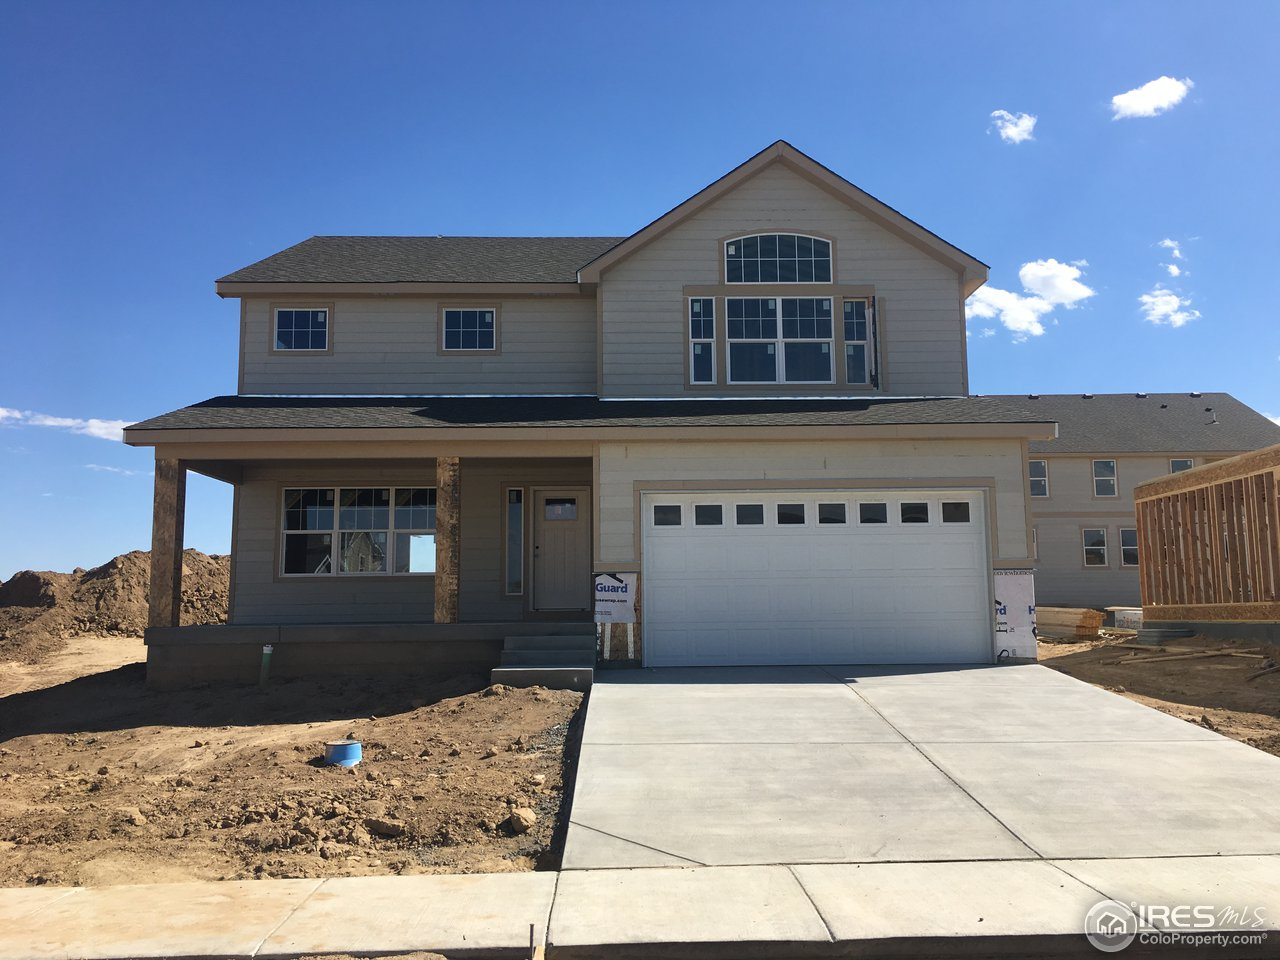 A BRAND NEW HOME...This new build home beautiful 2-story plan features an open concept. Extraordinary master bedroom, with large window for natural light. The kitchen has a very large island w/ a lot of countertop and cabinet space. 3 bedrooms on the second level, with a big loft. 3 car tandem garage. This home has granite countertops throughout, real tile in bathrooms, A/C, garage door opener, rear patio. Color selections can still be made. Ready for move in Nov/Dec 2018.